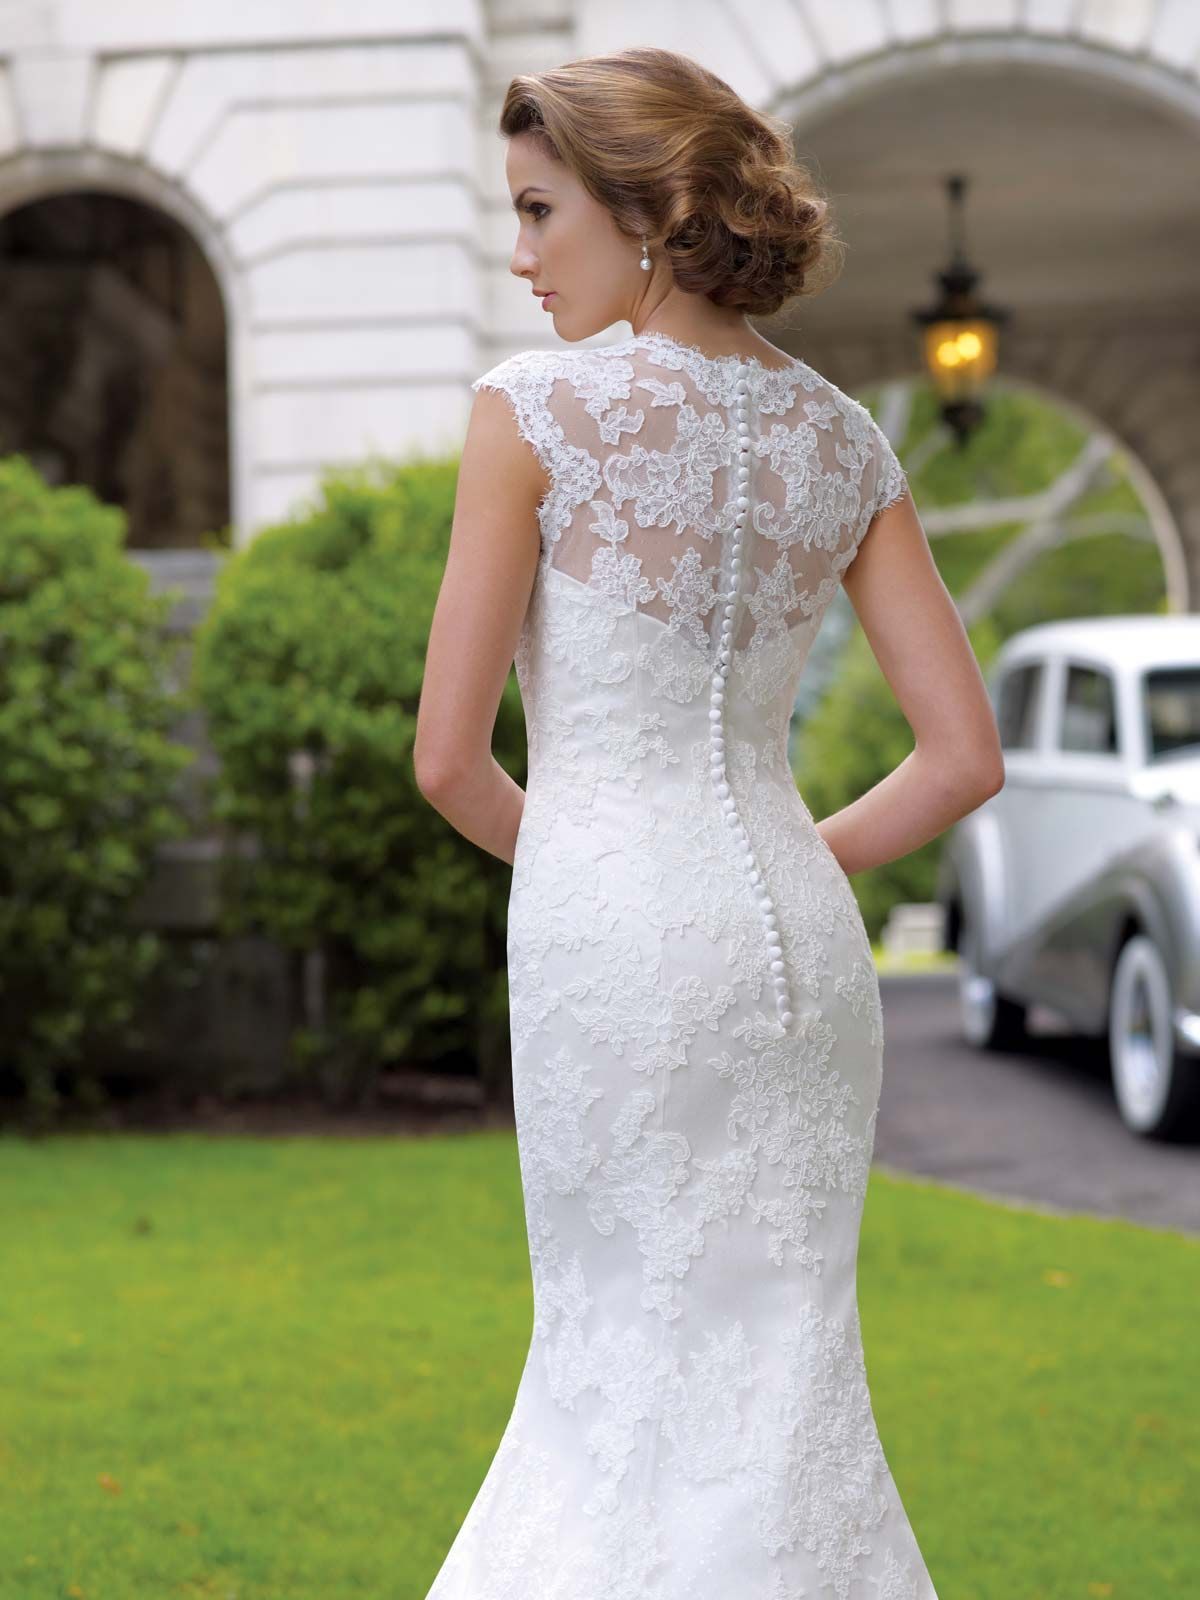 lace wedding dress buttons down back - Google Search | Wedding ...